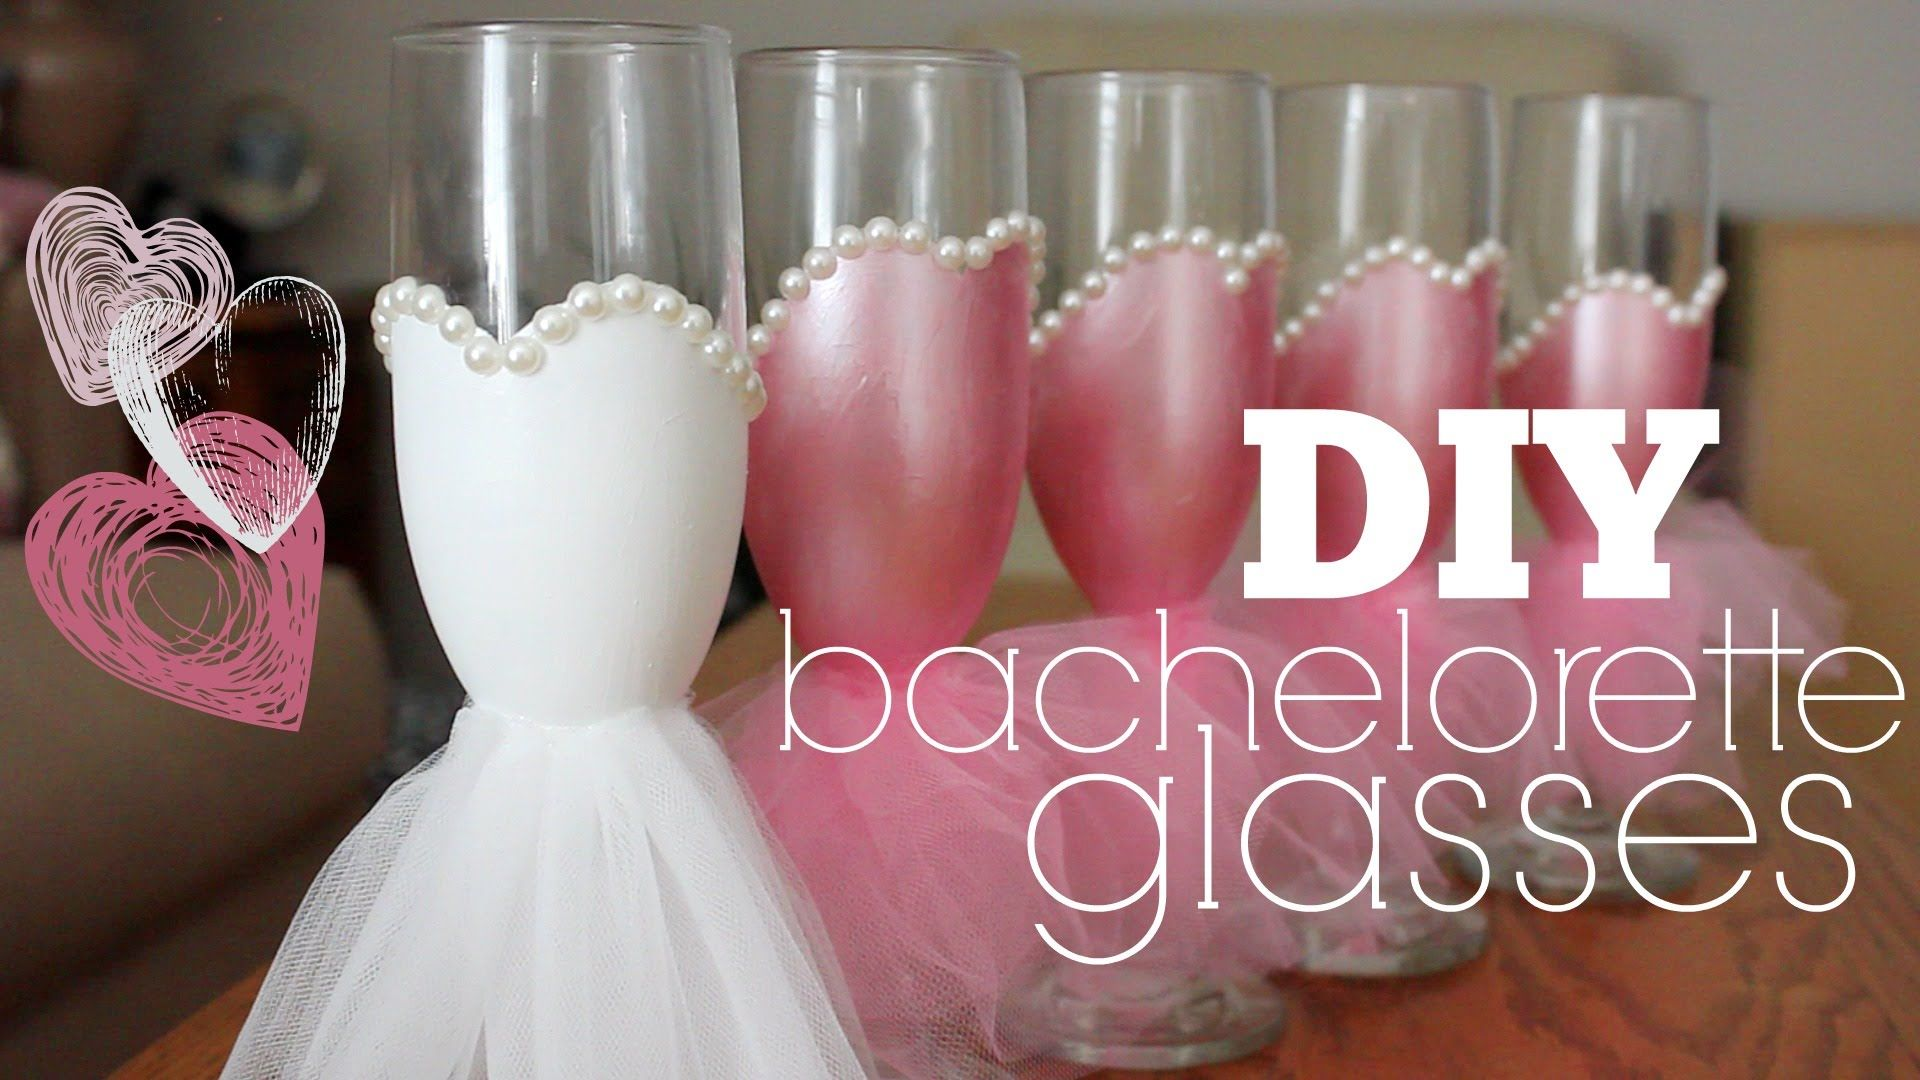 Diy Bachelorette Glasses We Can Do This Wedding Glasses Diy Bridesmaid Diy Bachelorette Diy